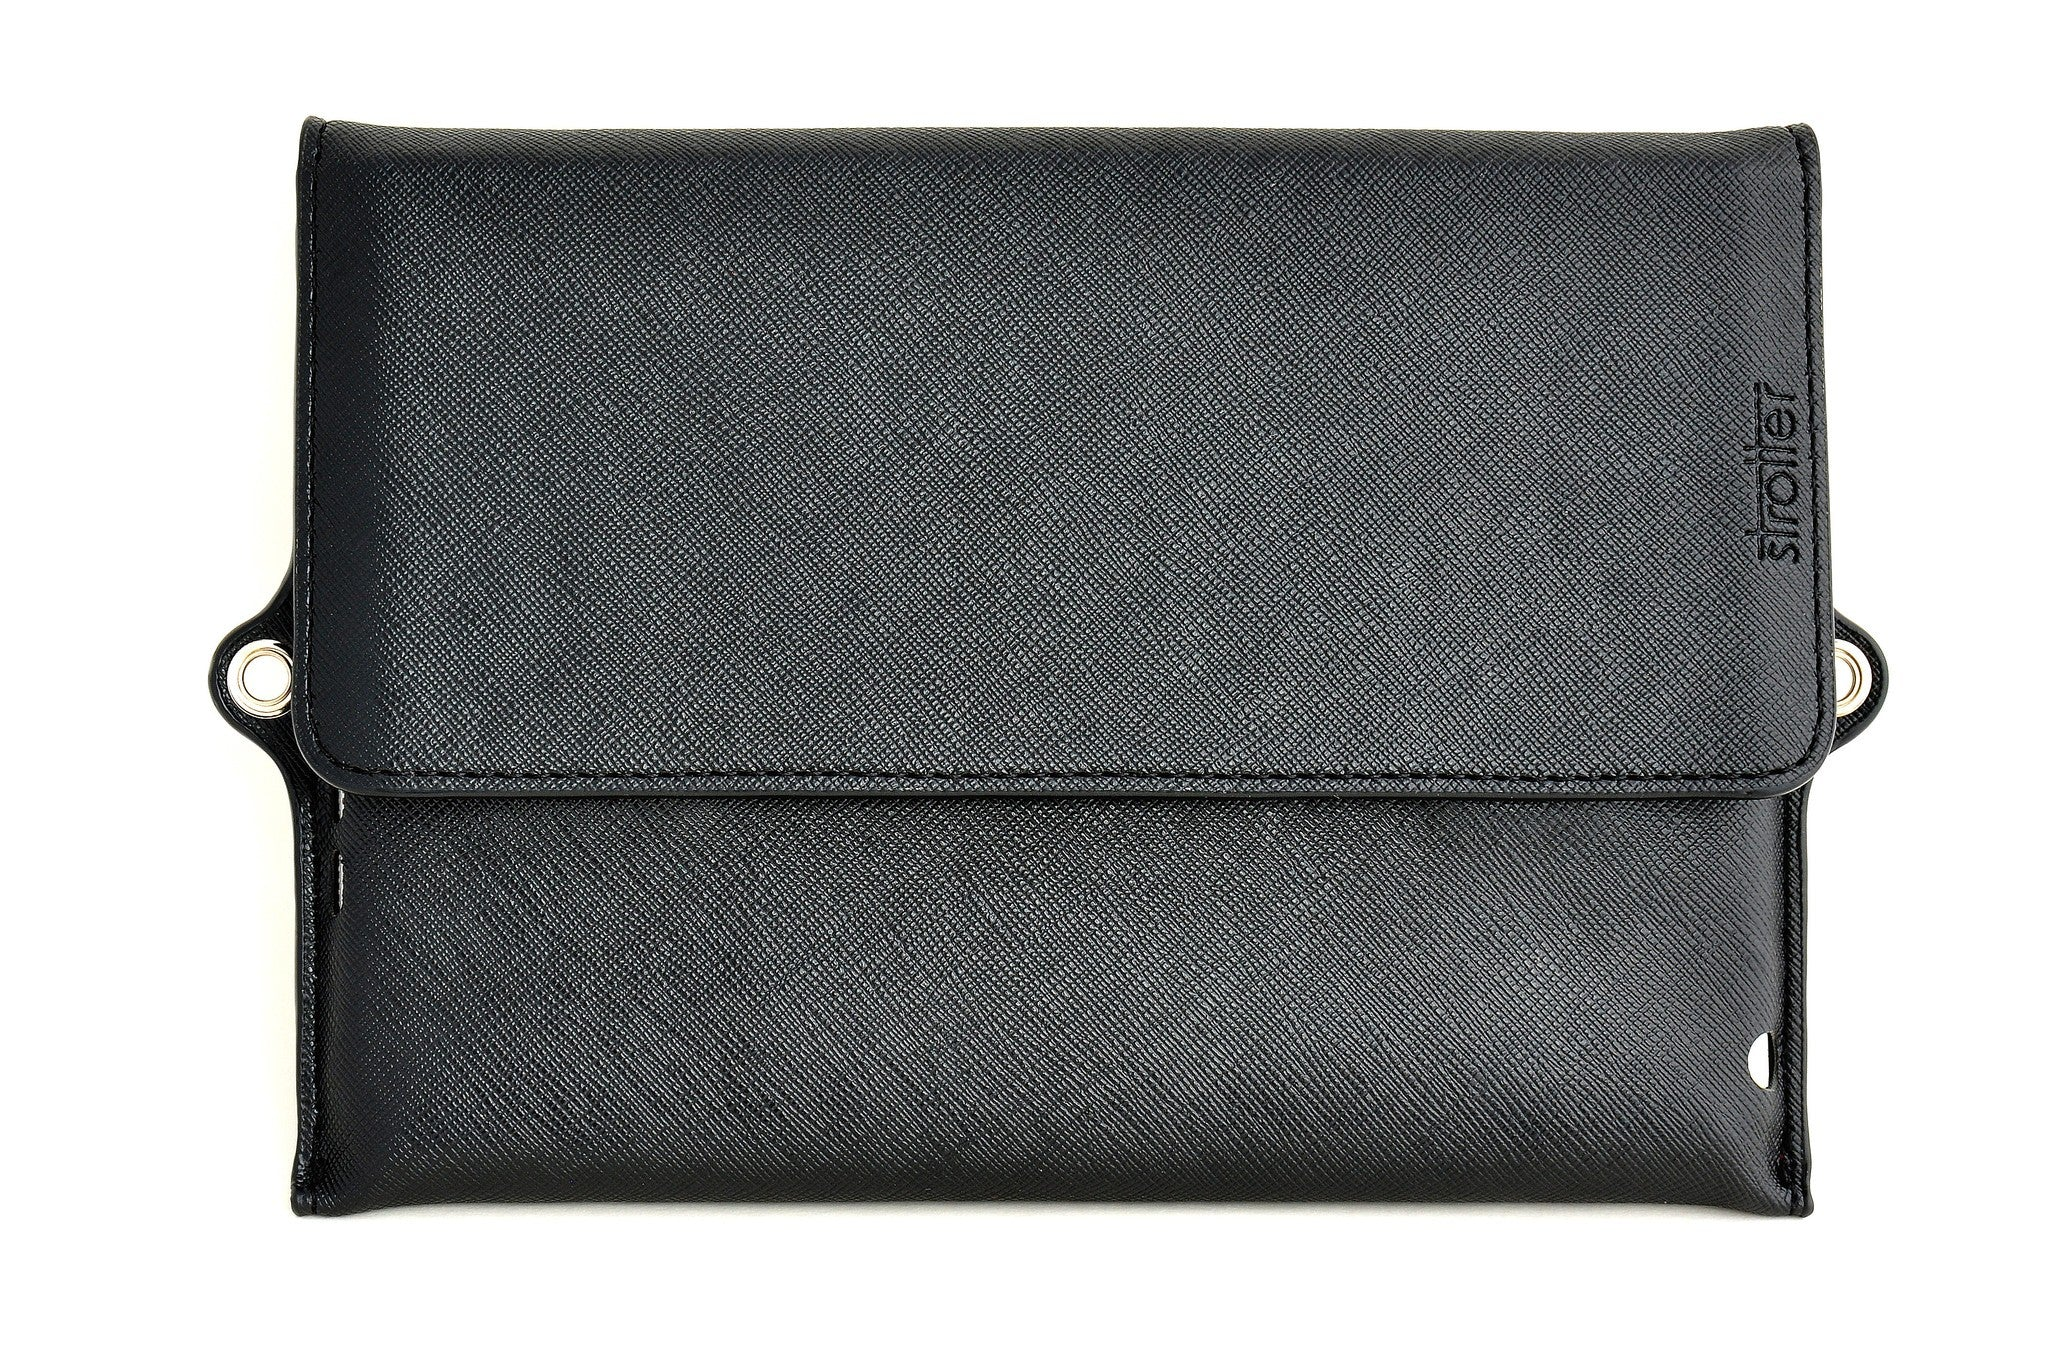 Case for iPad Mini - Across SL (synthetic leather) in black.